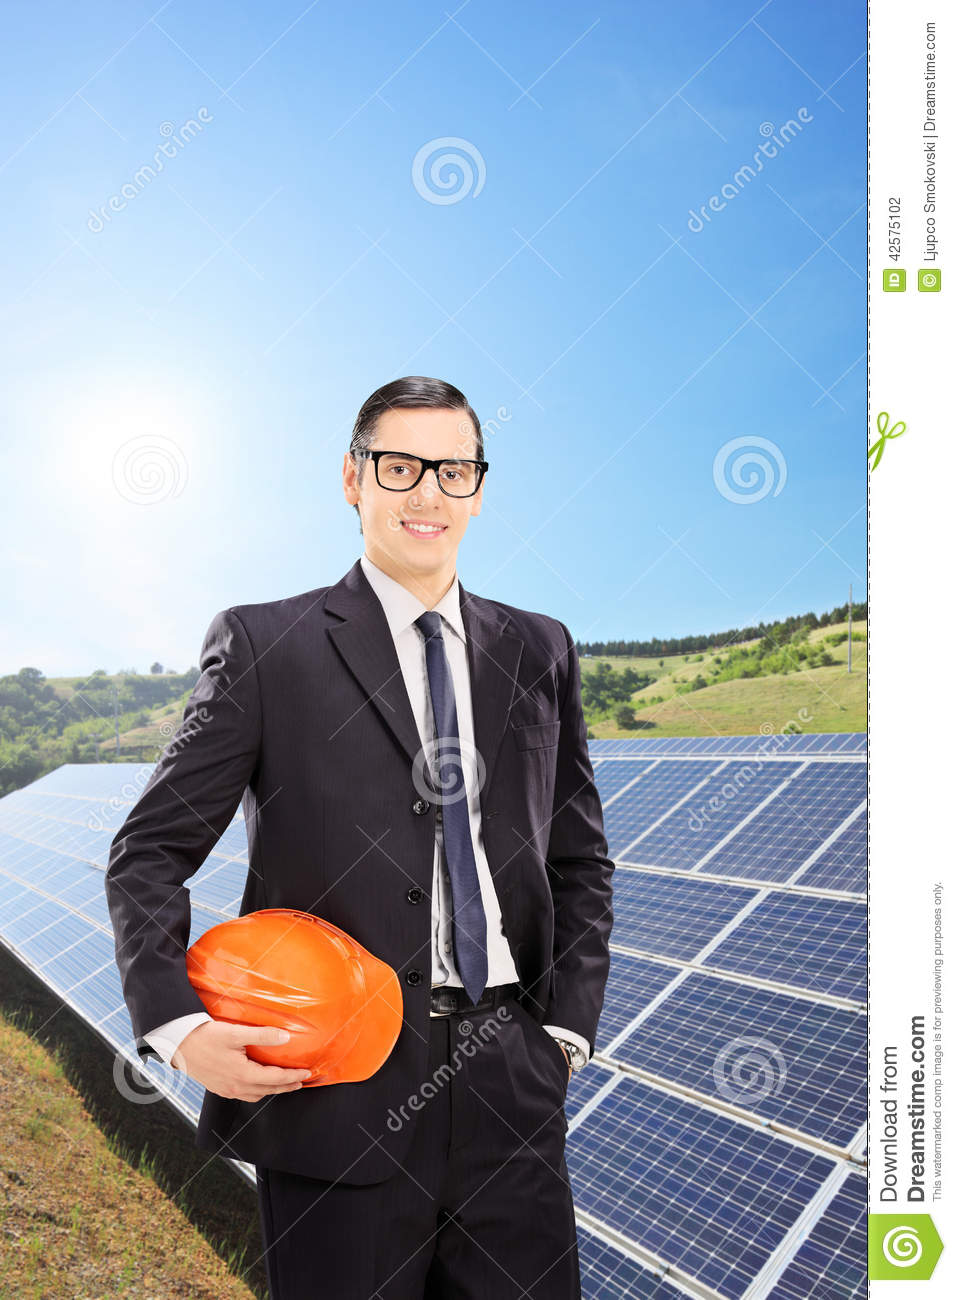 how to become a solar engineer